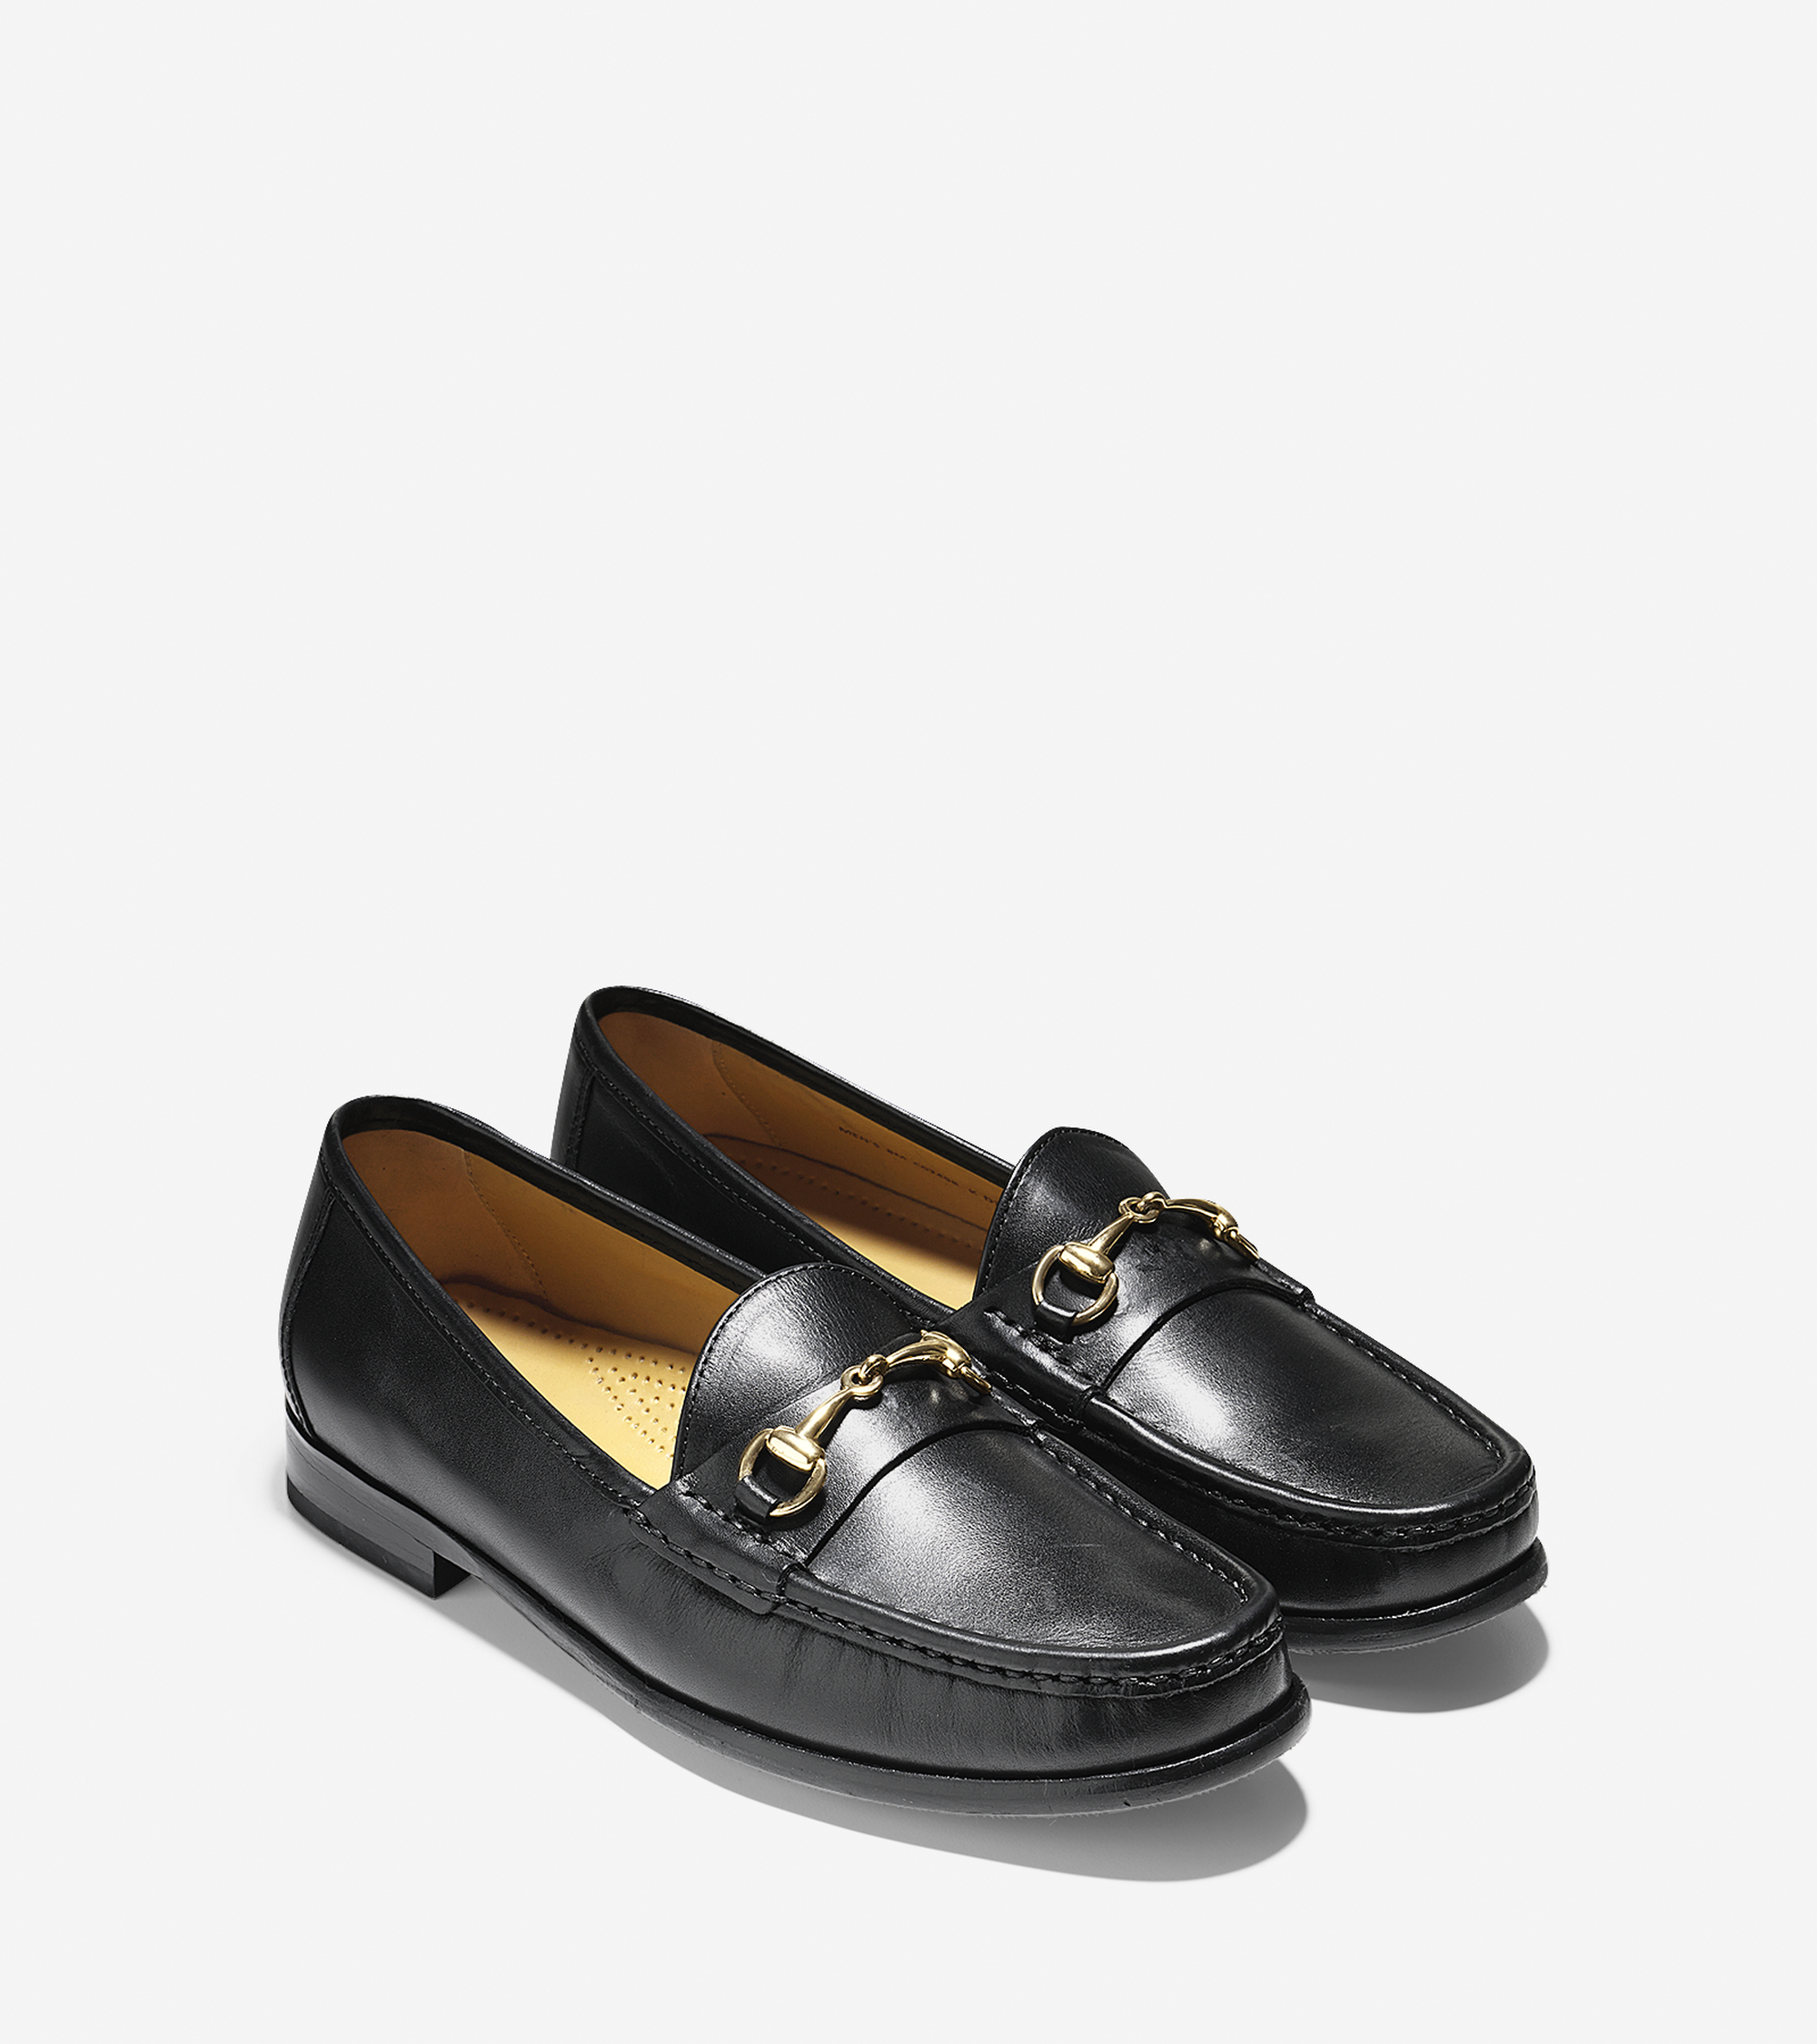 Cole Haan Mens Shoes Loafers